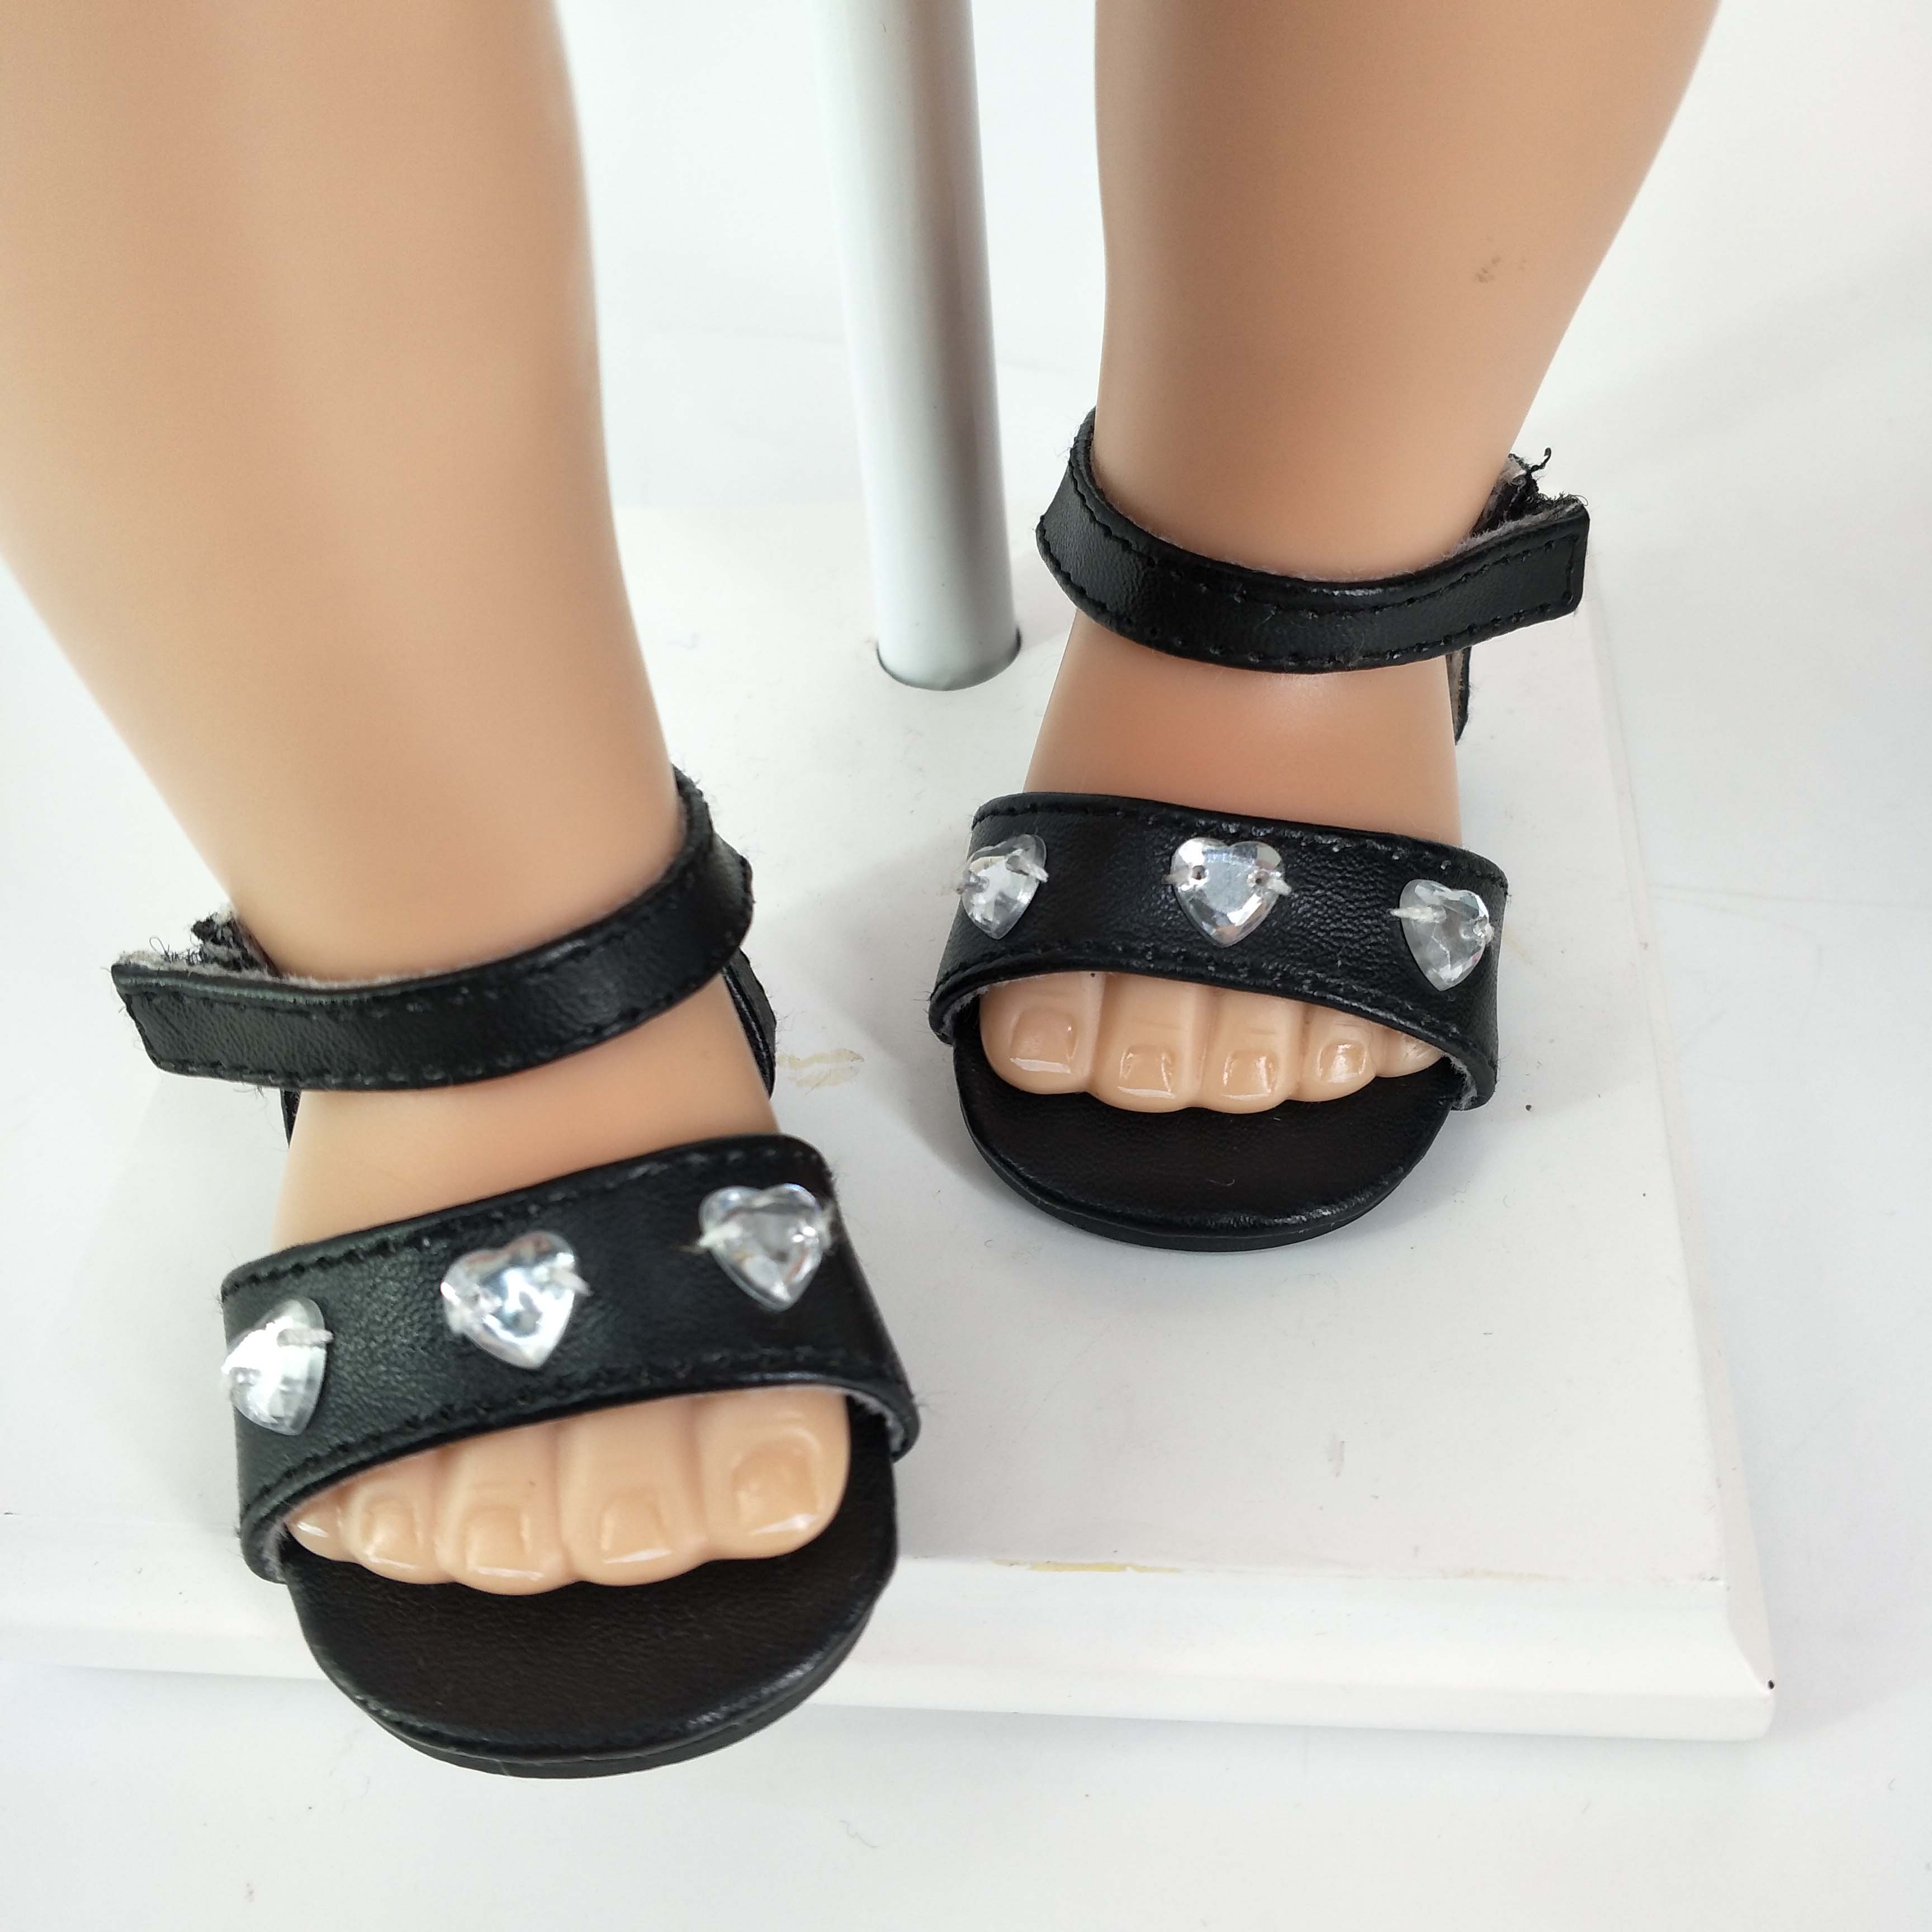 18 inch girl doll shoes